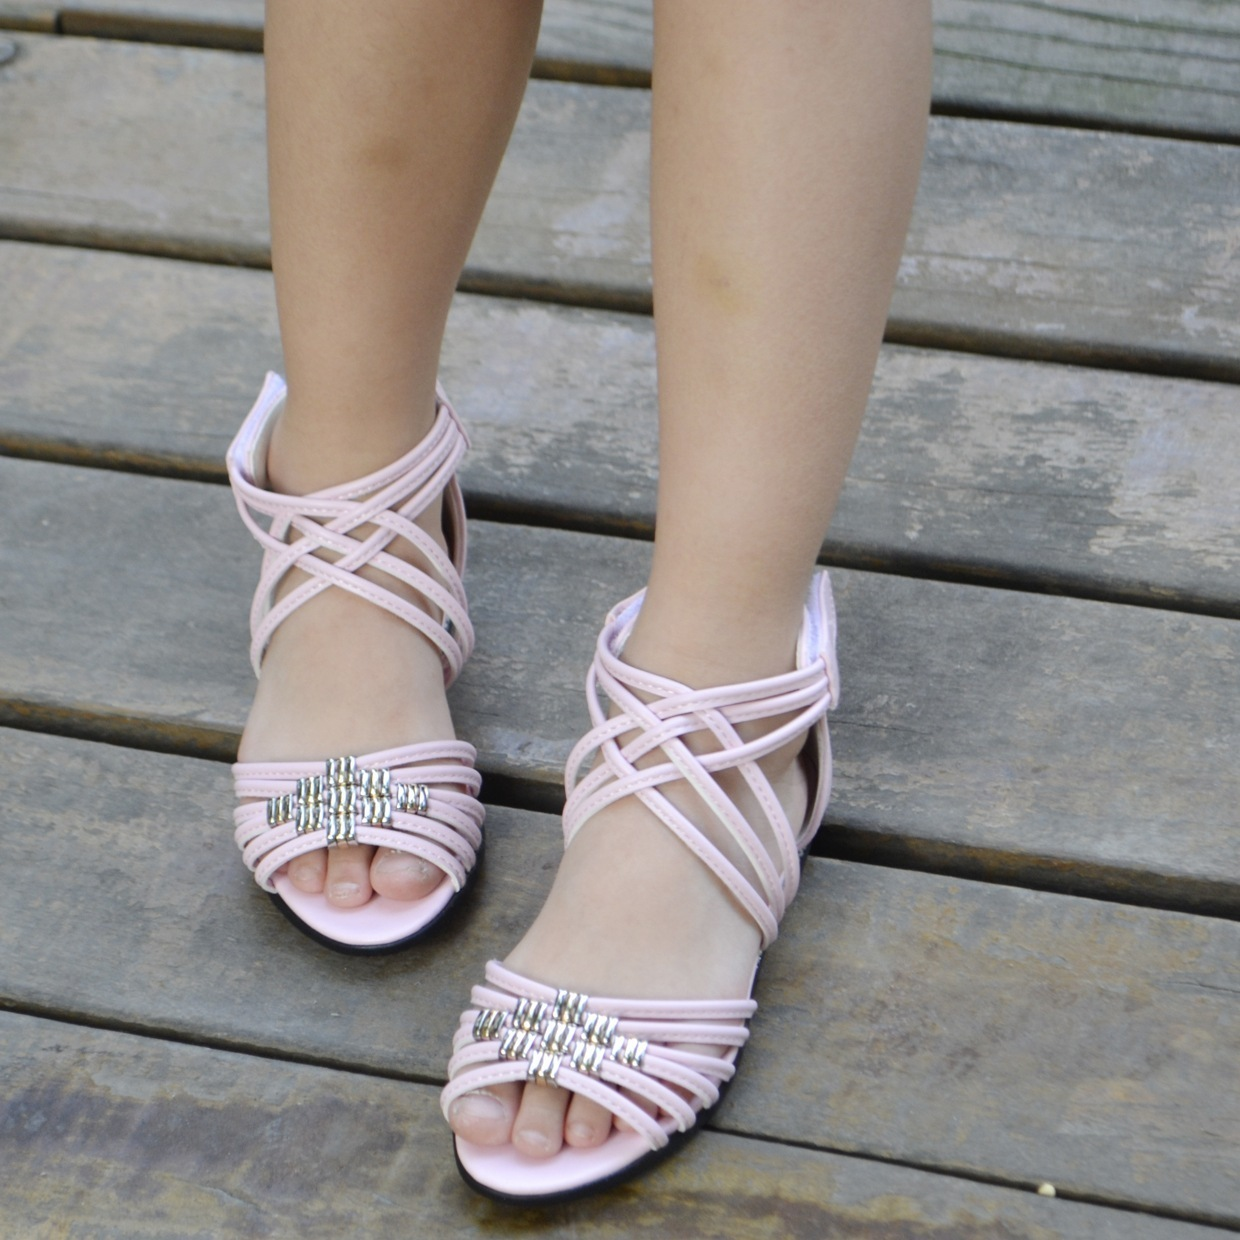 Girls Shoes Boys Shoes Accessories Clearance; All Clearance Shoes Women's Shoes Men's Shoes Girls Shoes Boys Shoes Or, perhaps it's because there are so many girls' sandals available in so many great styles. Whatever the reason for, you'll find plenty of options to make your girl .